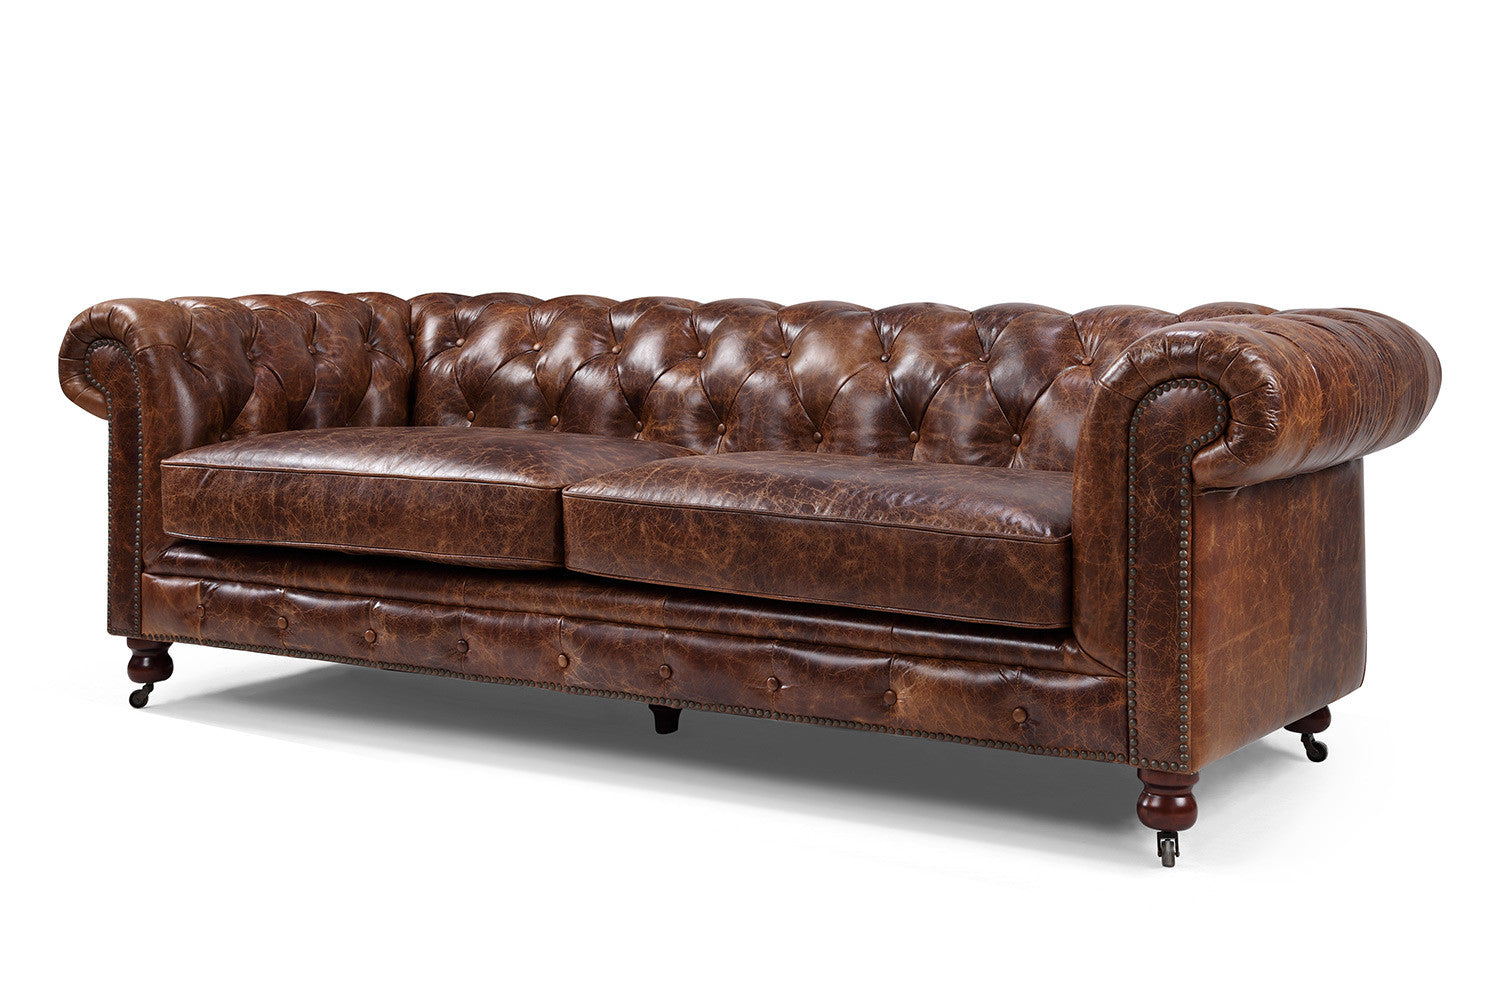 Incroyable Kensington Chesterfield Tufted Sofa By Rose U0026 Moore